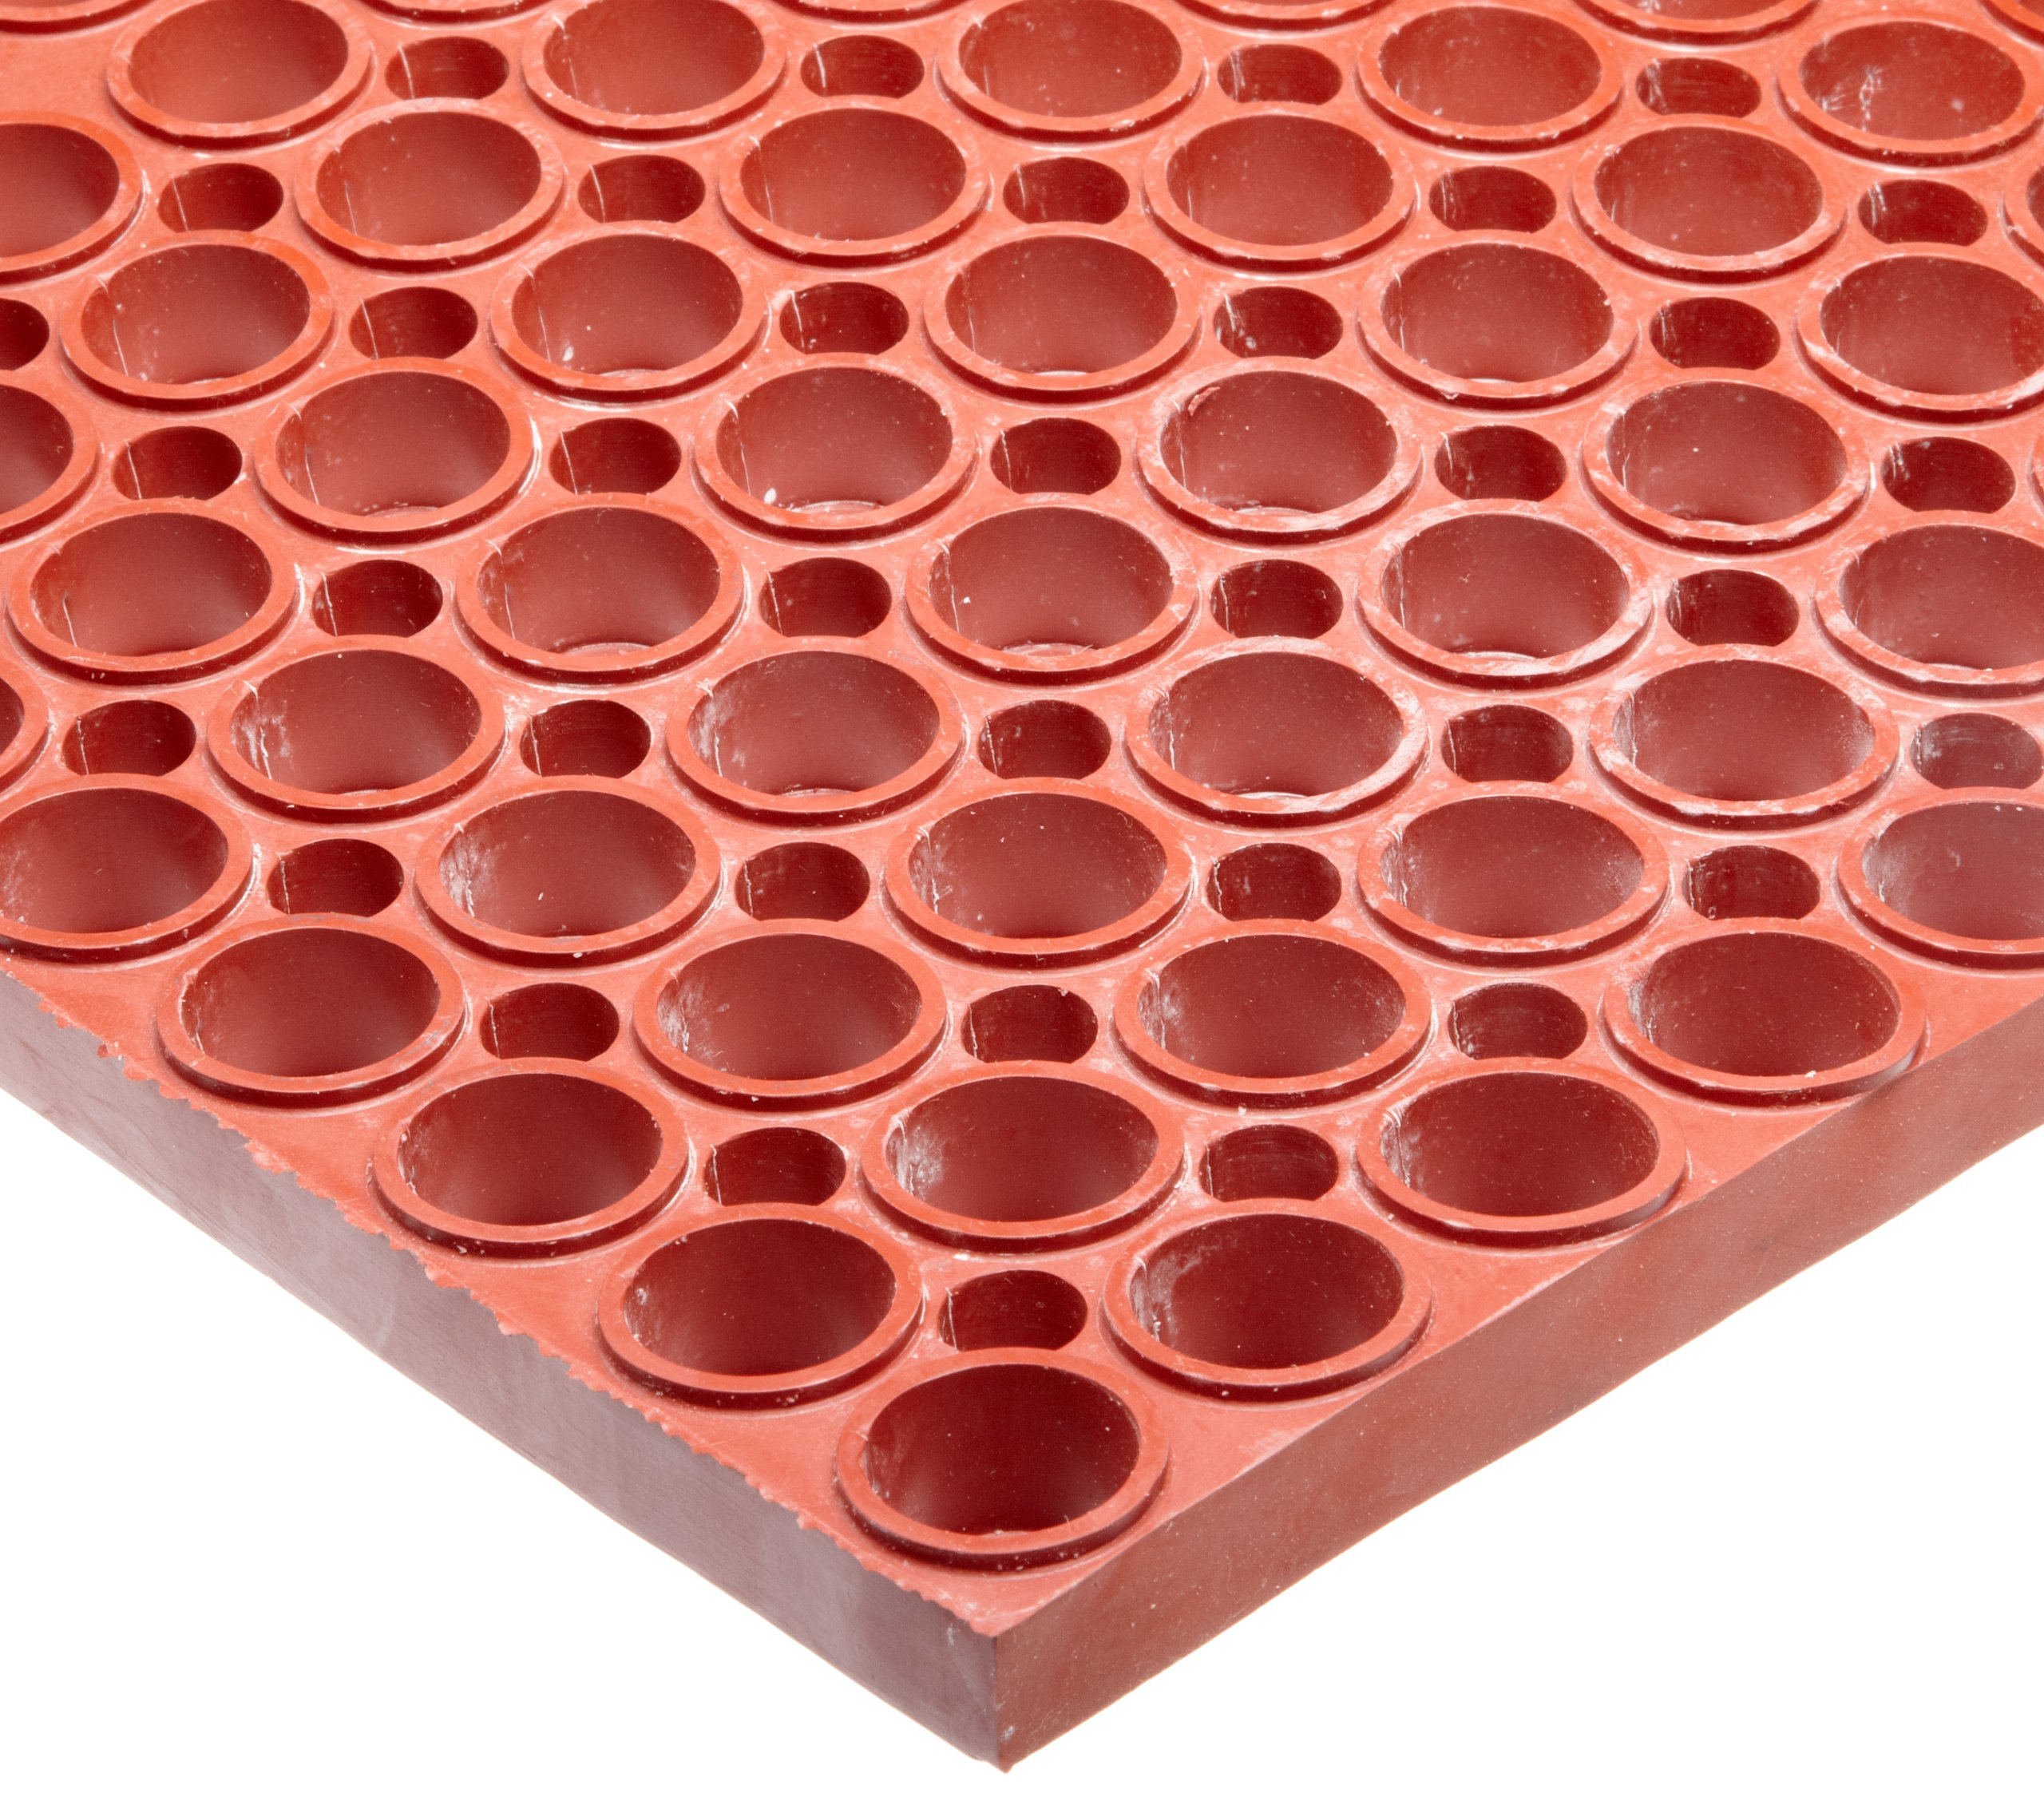 NoTrax T11 Heavy Duty Nitrile Rubber San-Eze II Safety/Anti-Fatigue Mat, for Wet or Greasy Areas, 39'' Width x 29-1/4'' Length x 7/8'' Thickness, Red